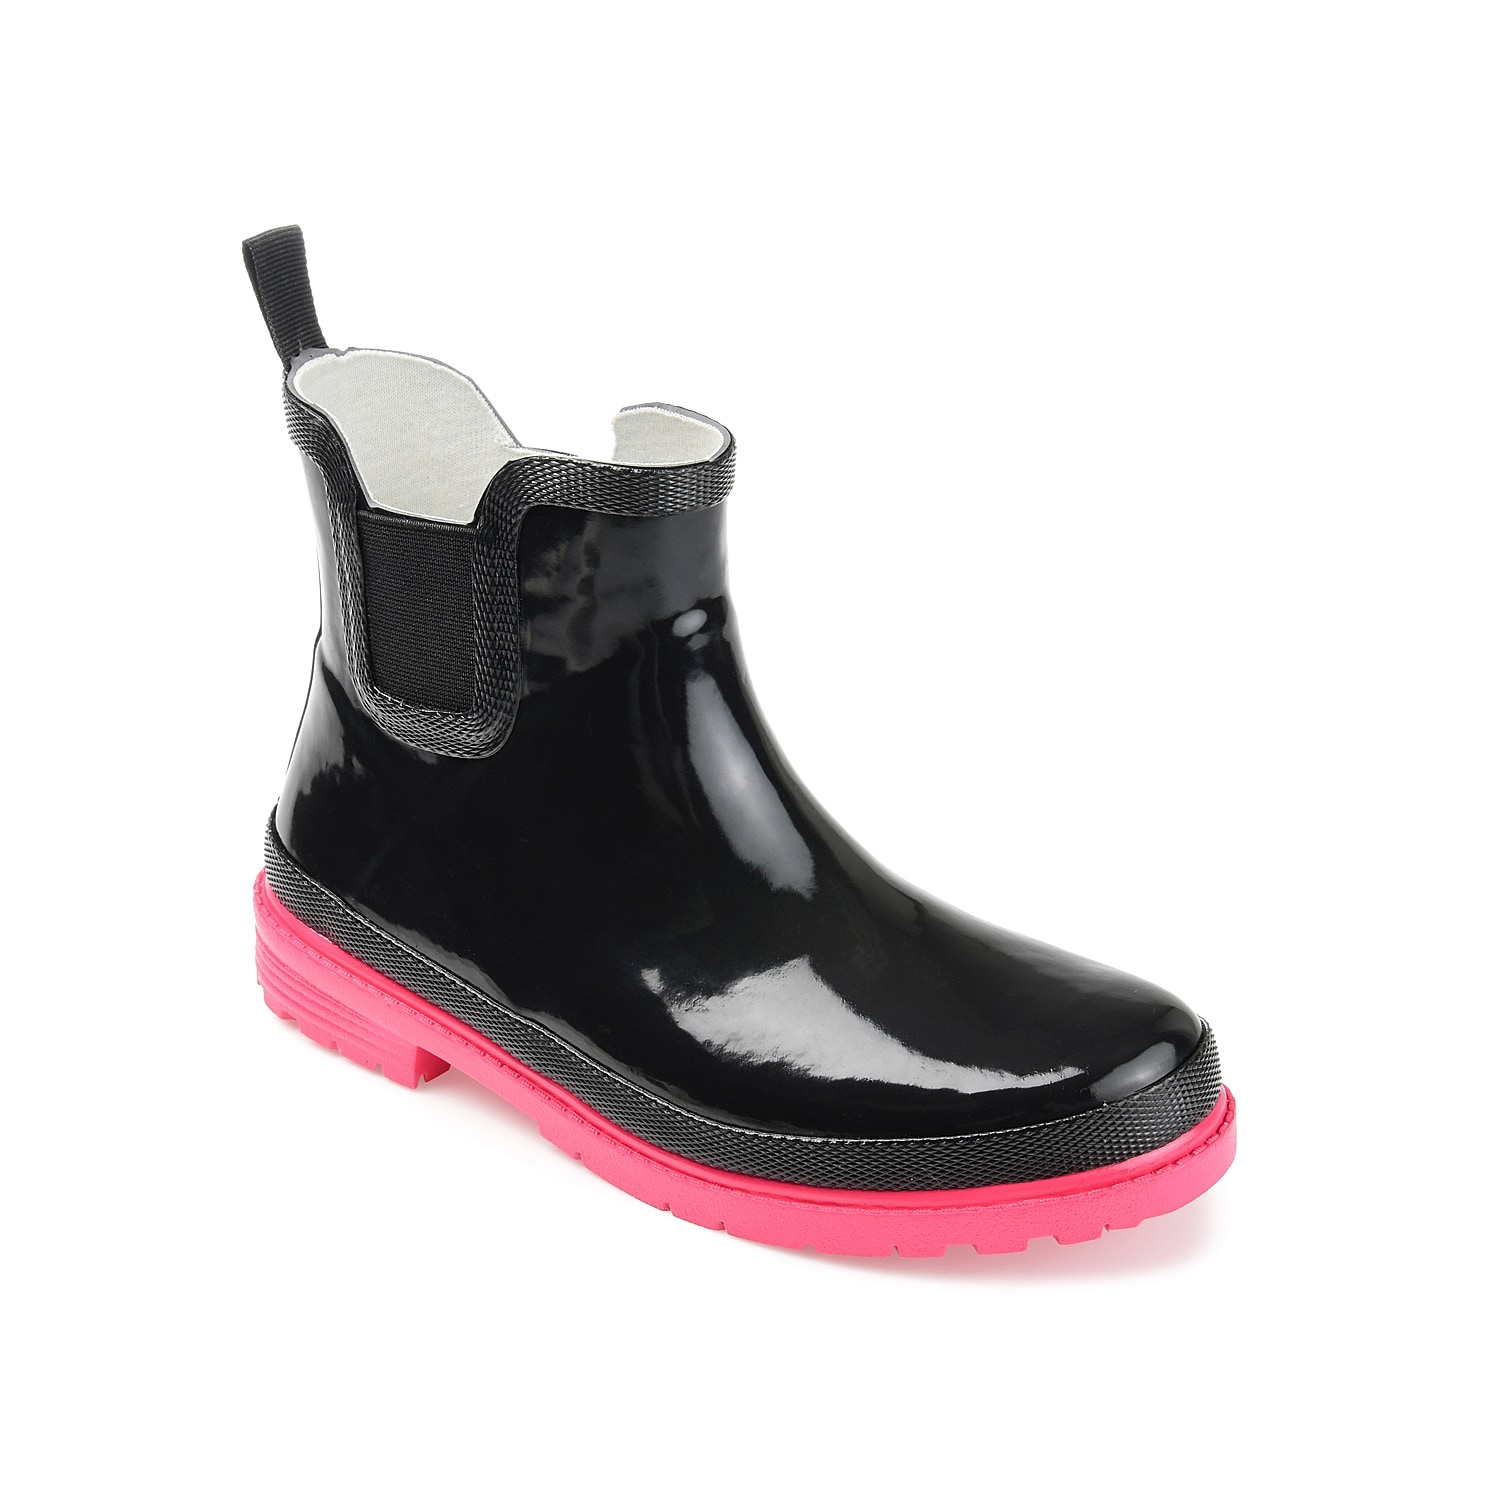 Bring on the rainy season with the Tekoa rain boot from Journee Collection.This waterproof pair features a fun design to brighten up gloomy days.Click here for Boot Measuring Guide.